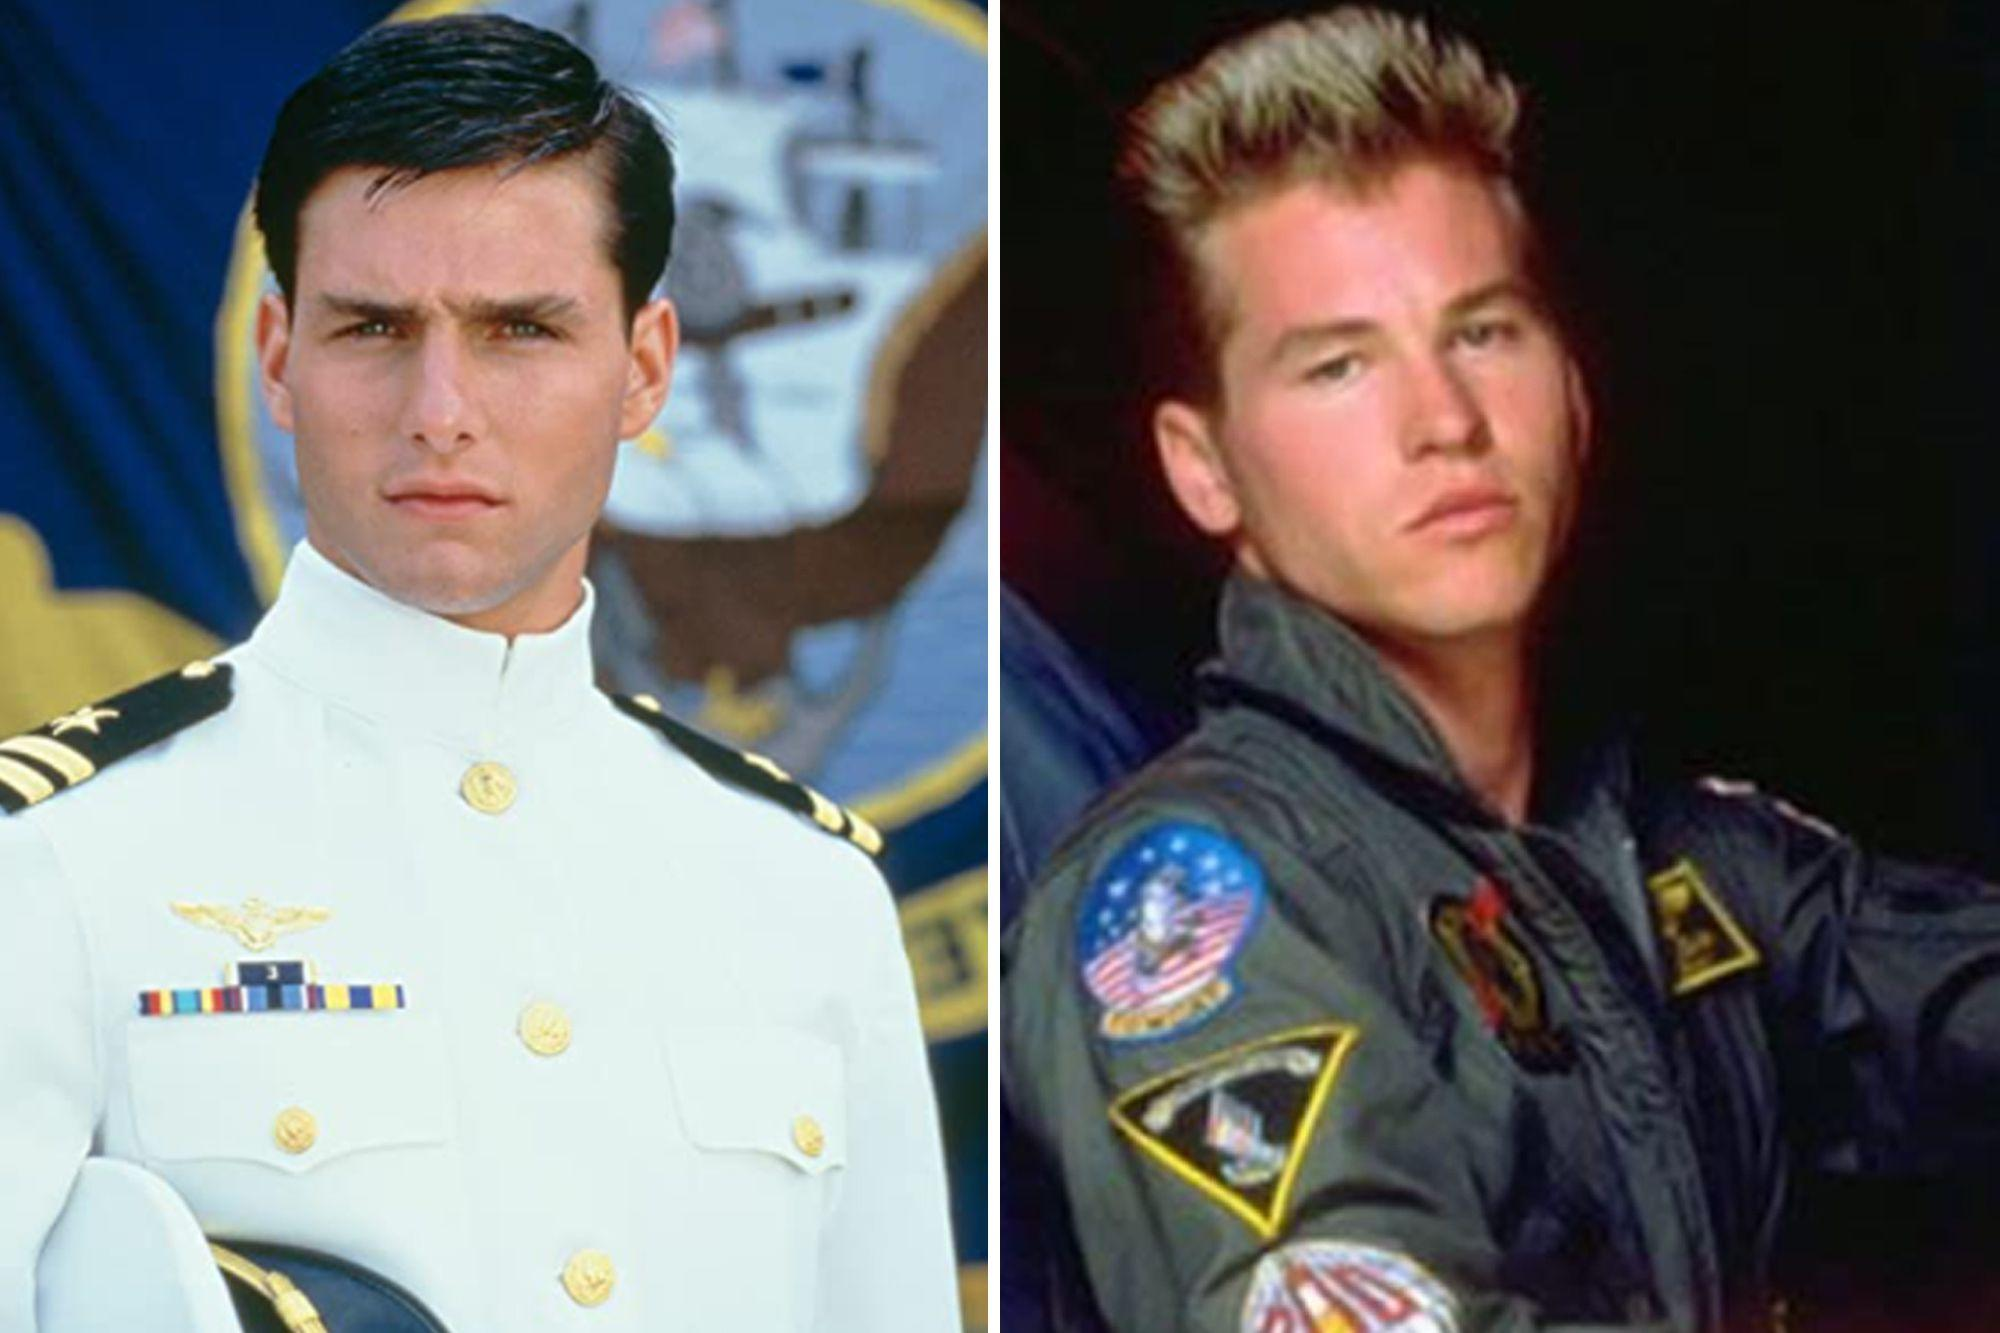 Top Gun: from Tom Cruise's 1986 moment of glory to Val Kilmer's current twilight